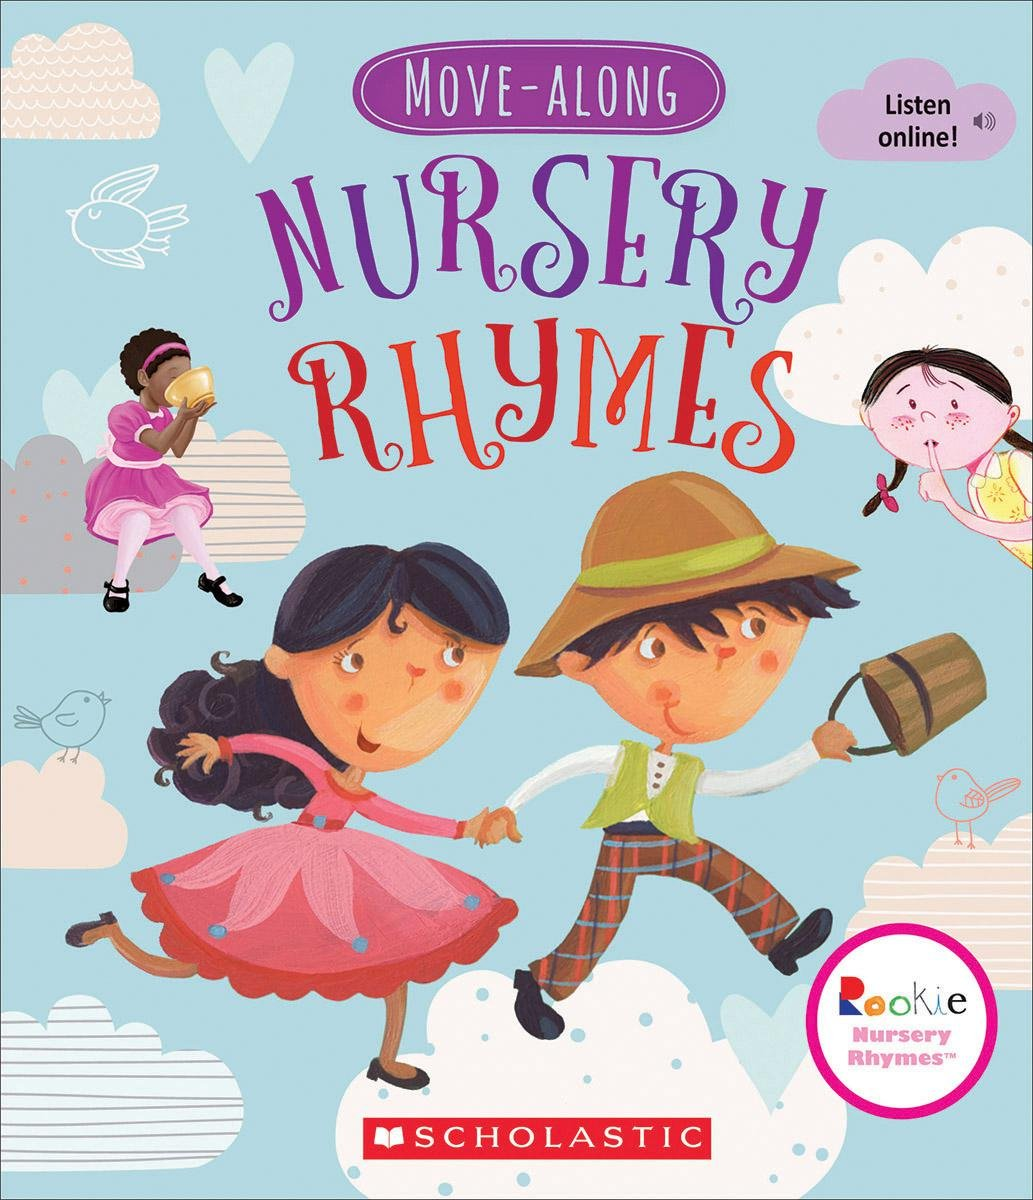 Move-Along Nursery Rhymes (Rookie Nursery Rhymes) PDF